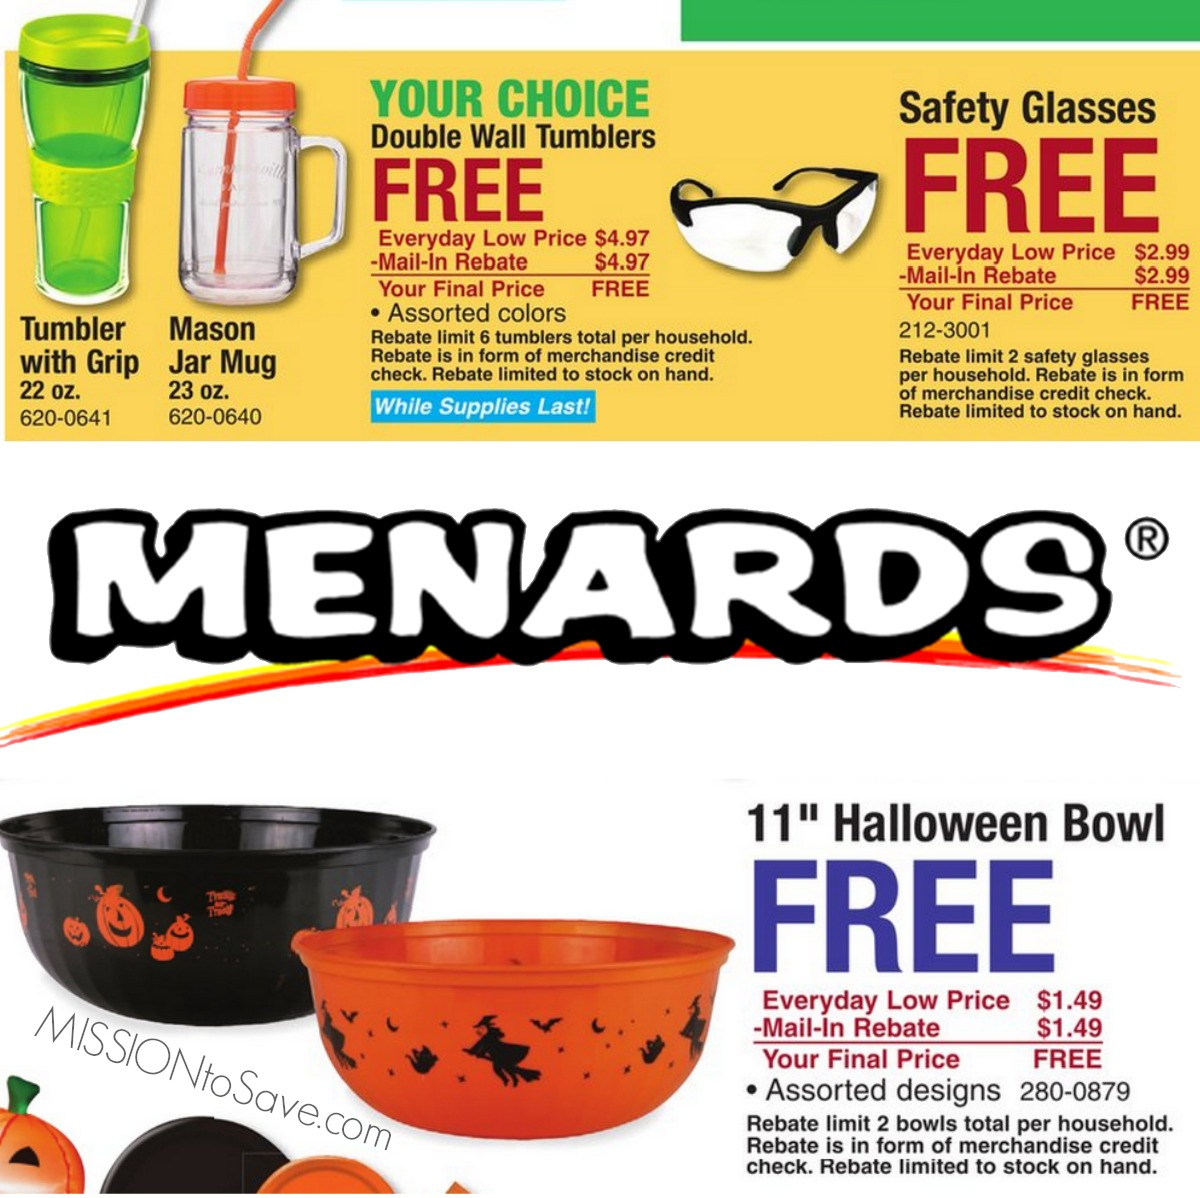 Menards Free After Rebate Deals: Insulated Tumblers